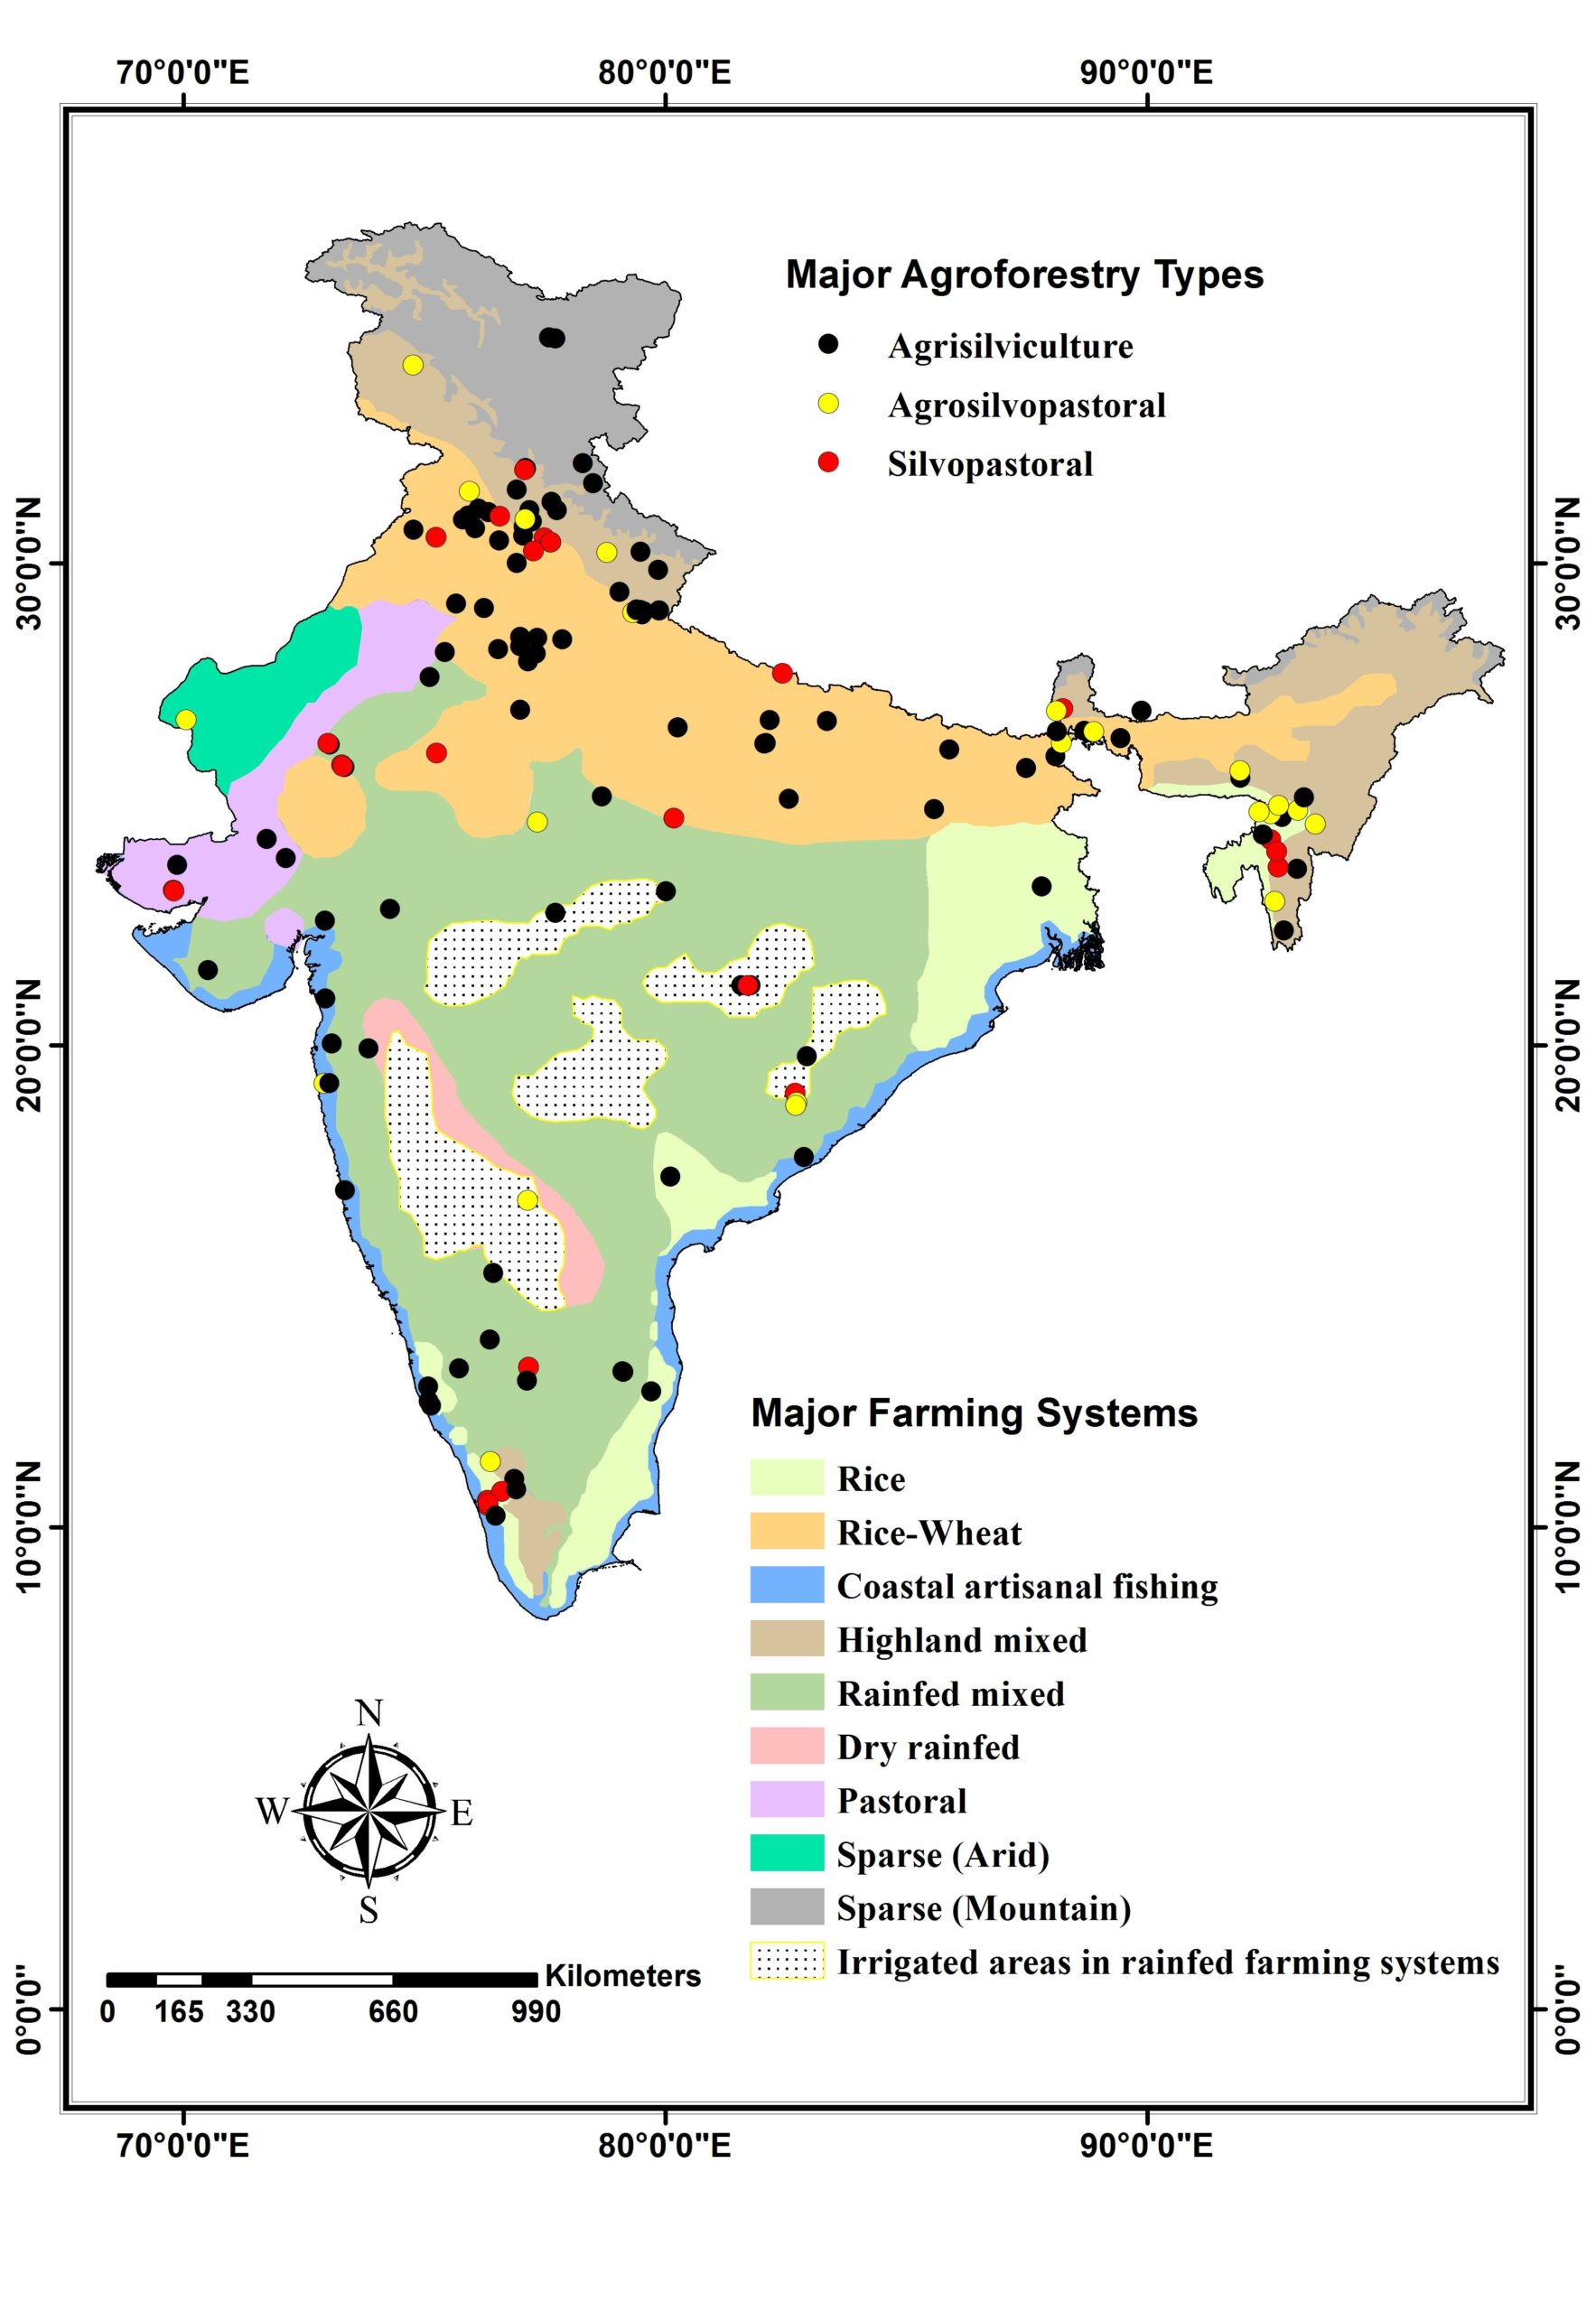 Map showing the major agroforestry types and farming systems of India. Map courtesy of Arun Jyoti Nath, modified version of Nath et al. 2020